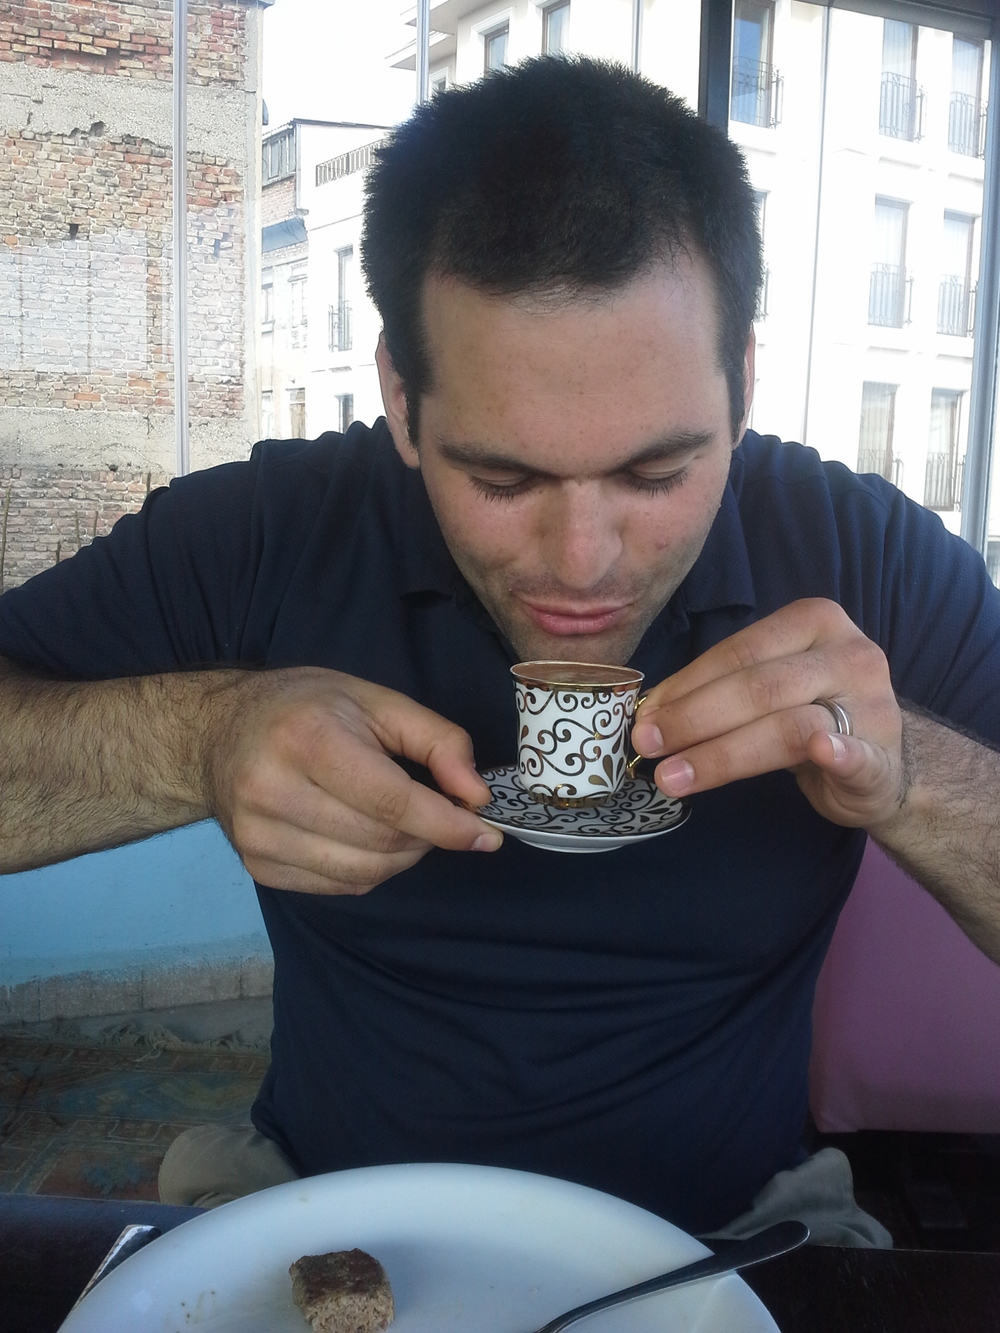 Pinkies out! Husband enjoying his Turkish coffee. You can also see the last bite of his lamb lunch. :)